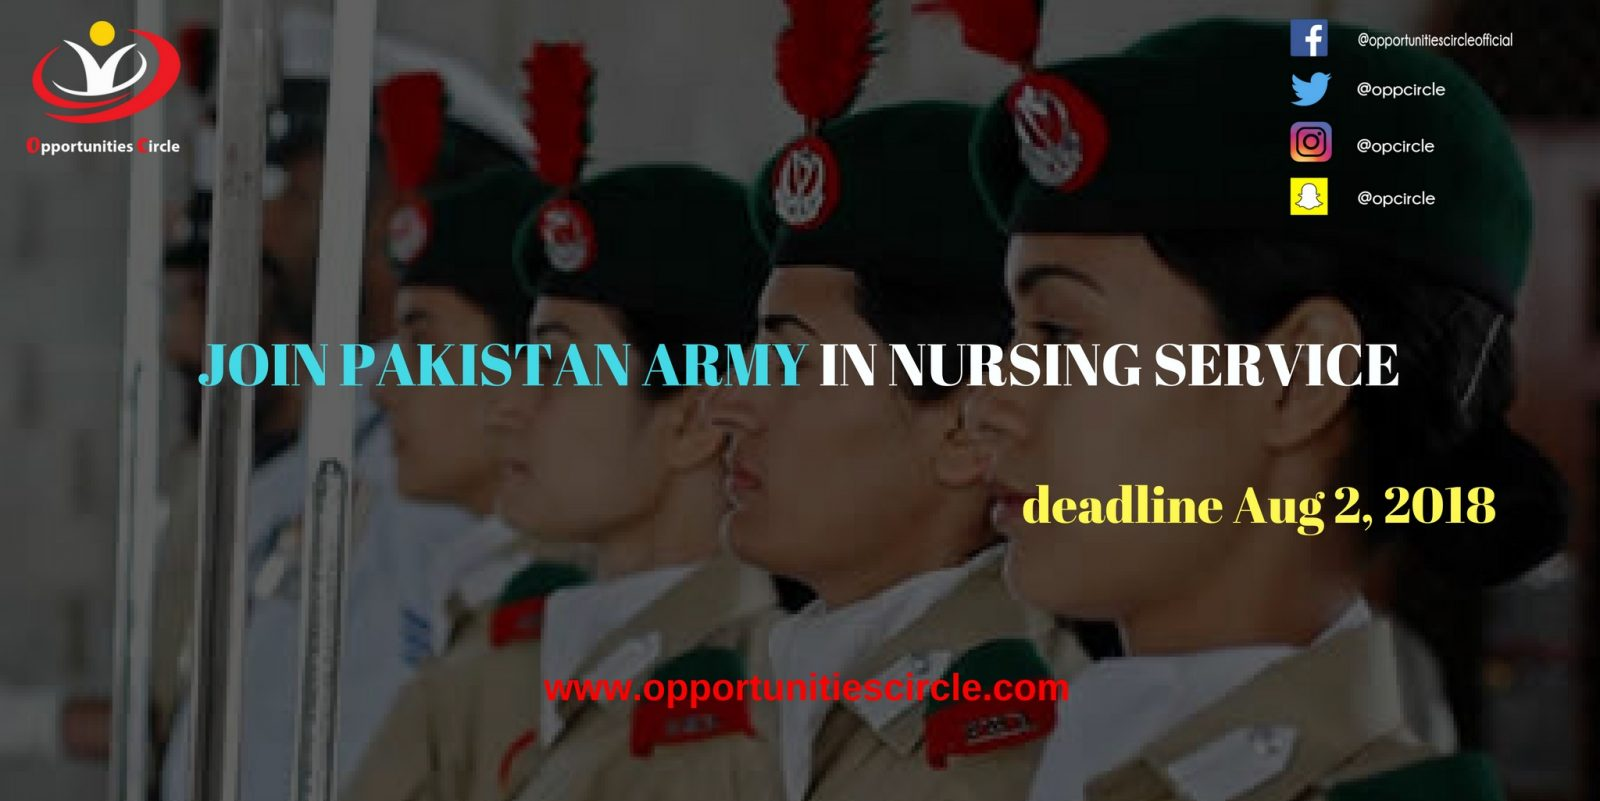 JOIN PAKISTAN ARMY IN NURSING SERVICE - Opportunities Circle